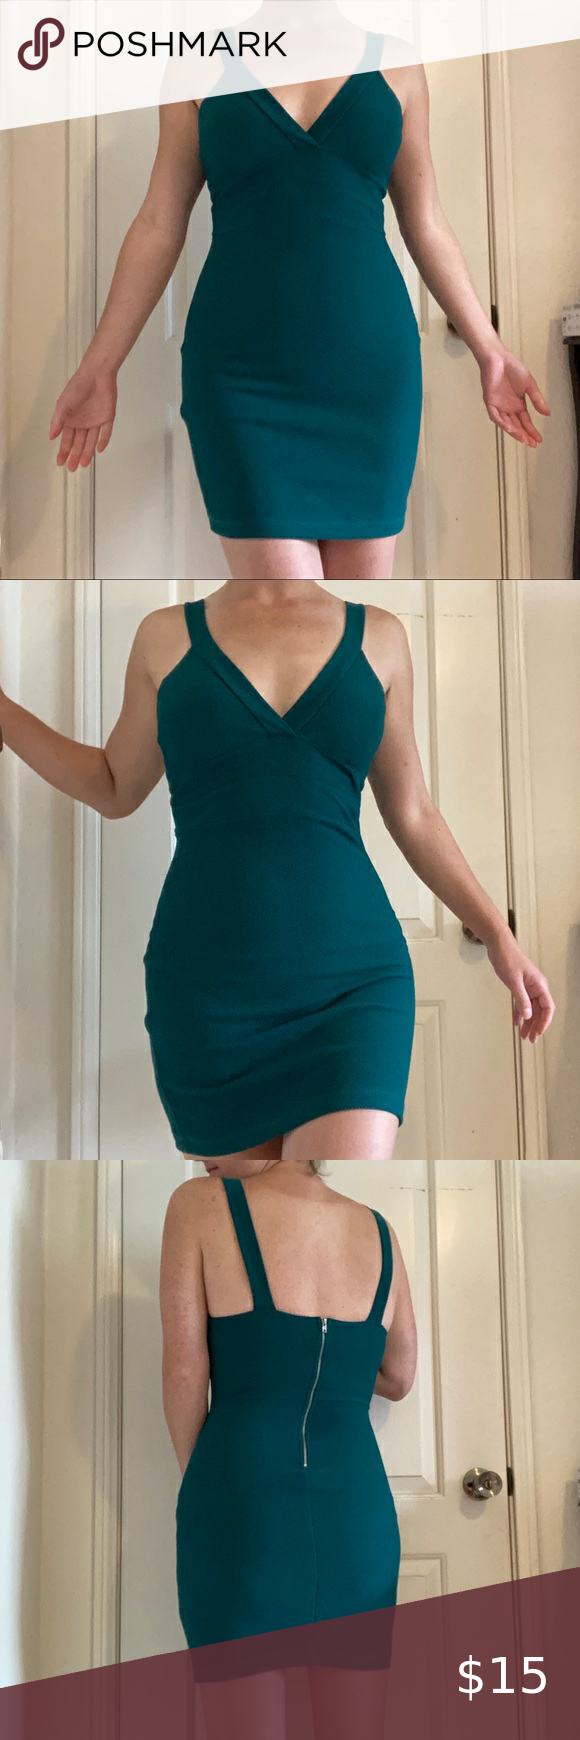 Stretchy Emerald Green Party Dress Emerald Green Party Dress Green Party Dress Dresses [ 1740 x 580 Pixel ]